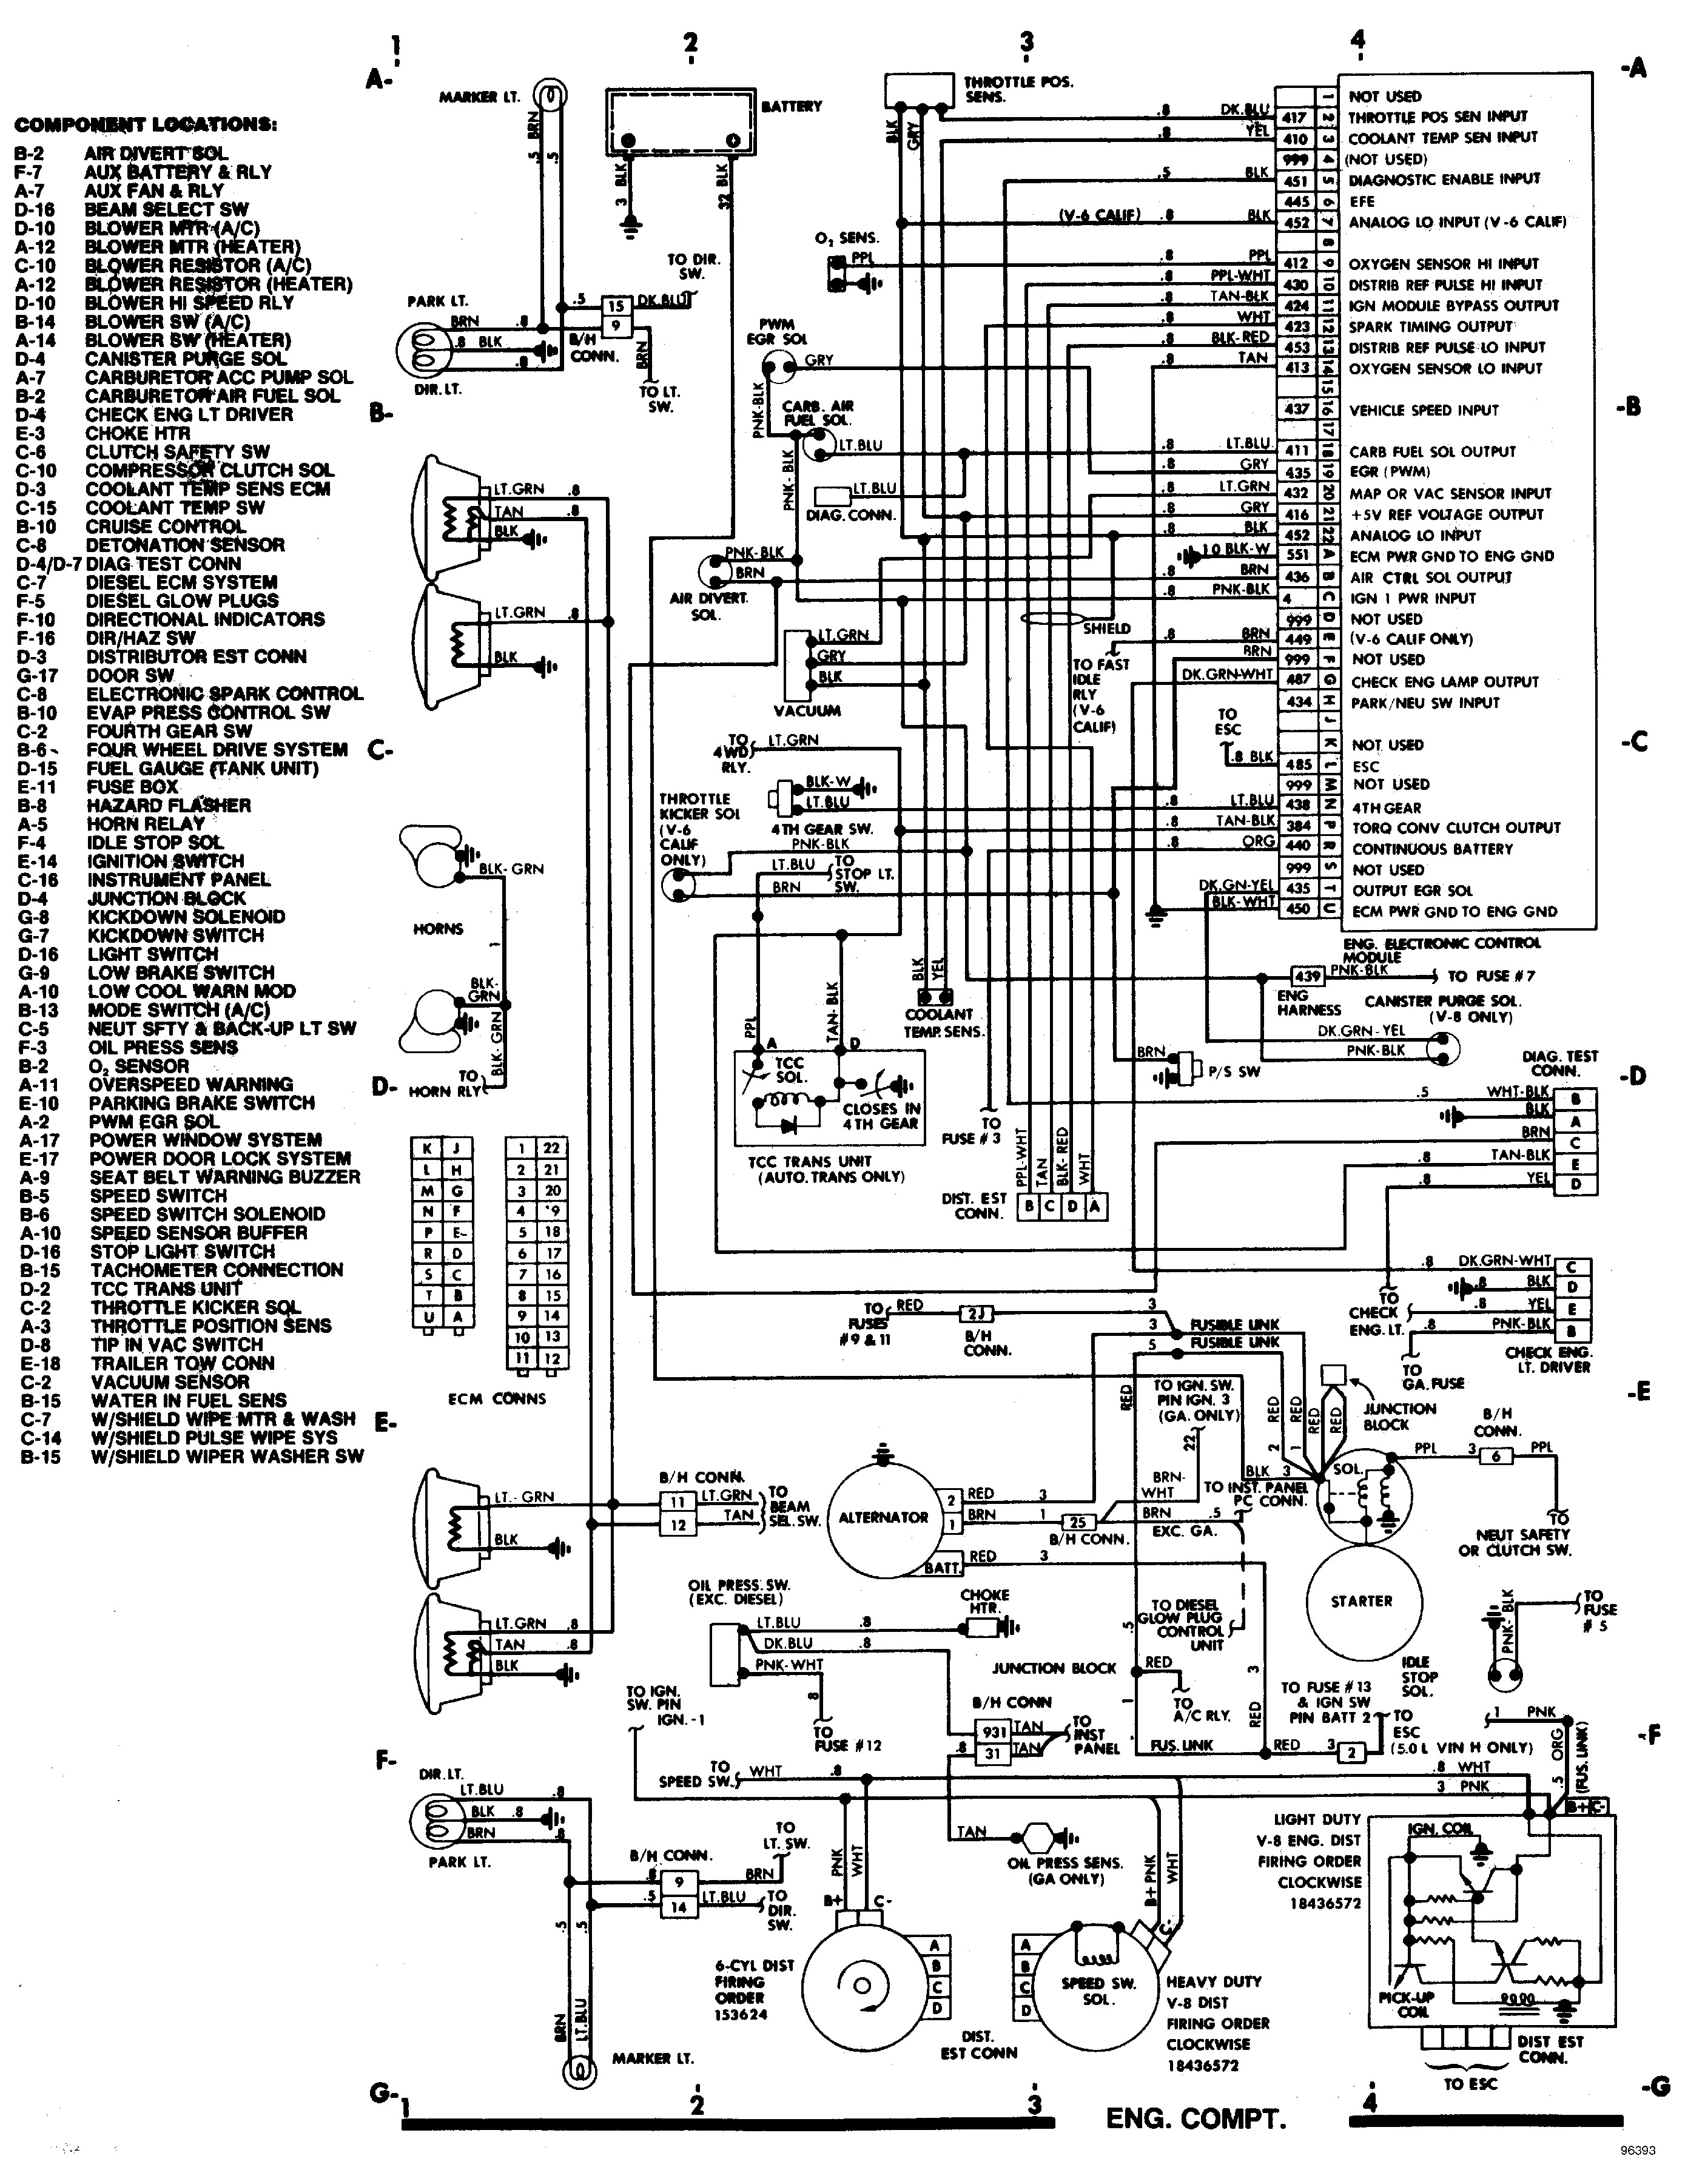 78 chevy truck wiring diagram 7 pin round c10  for free